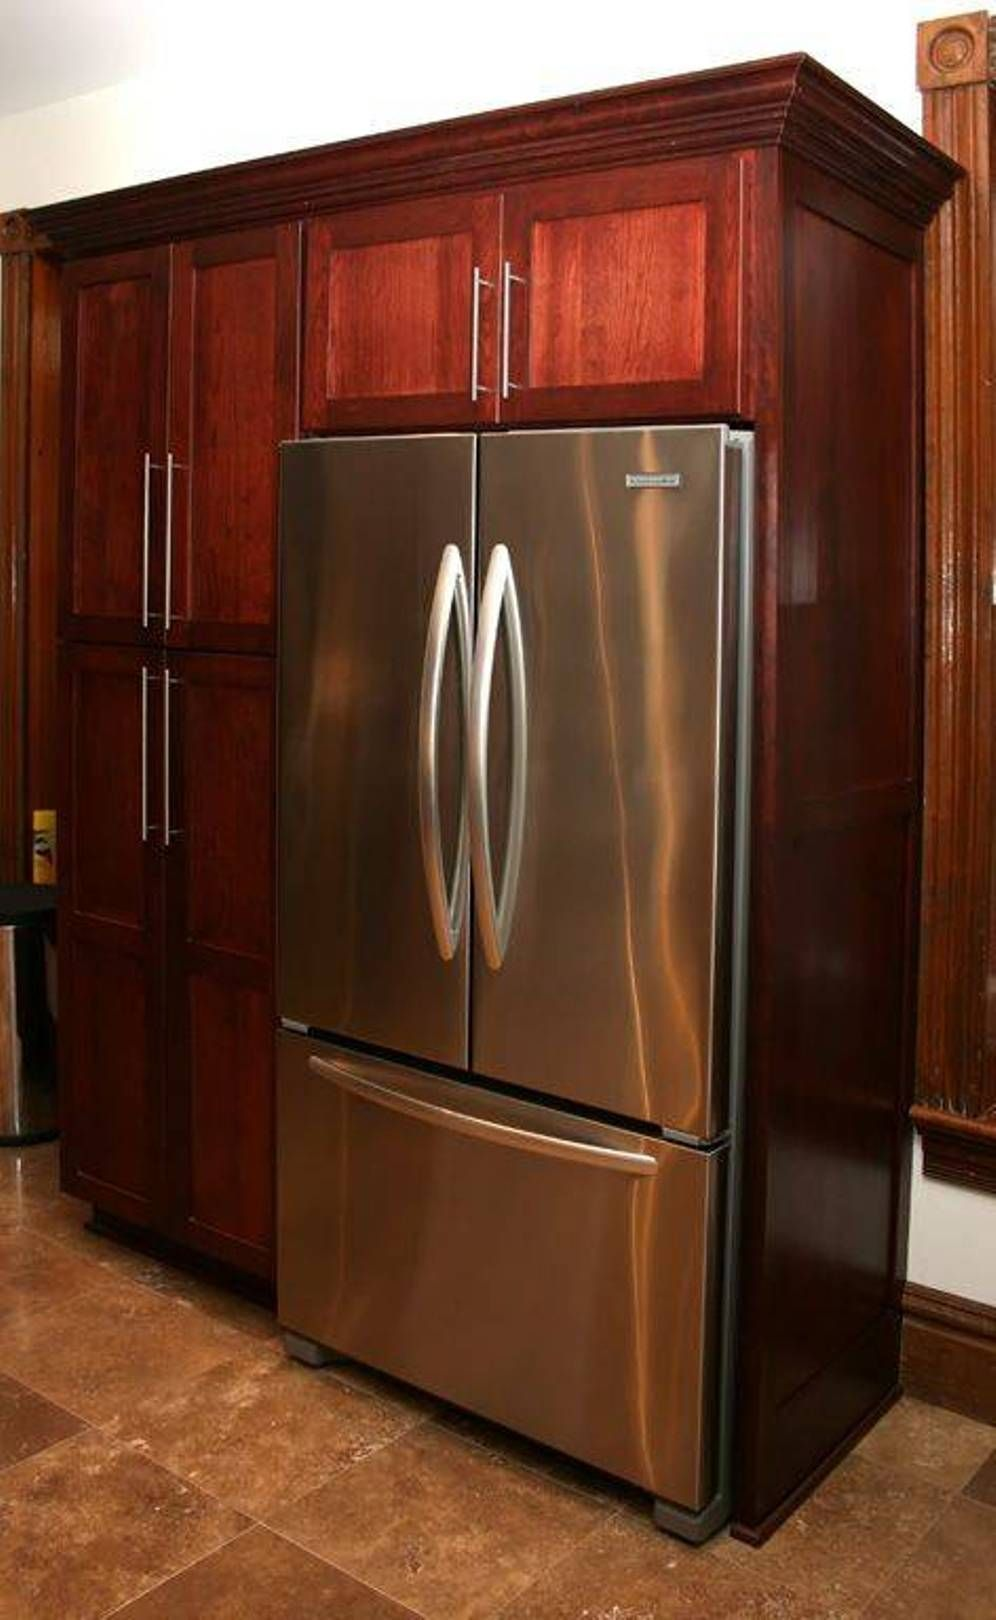 Kitchen Built In Refrigerator Cherrywood Cabinet Pantry With